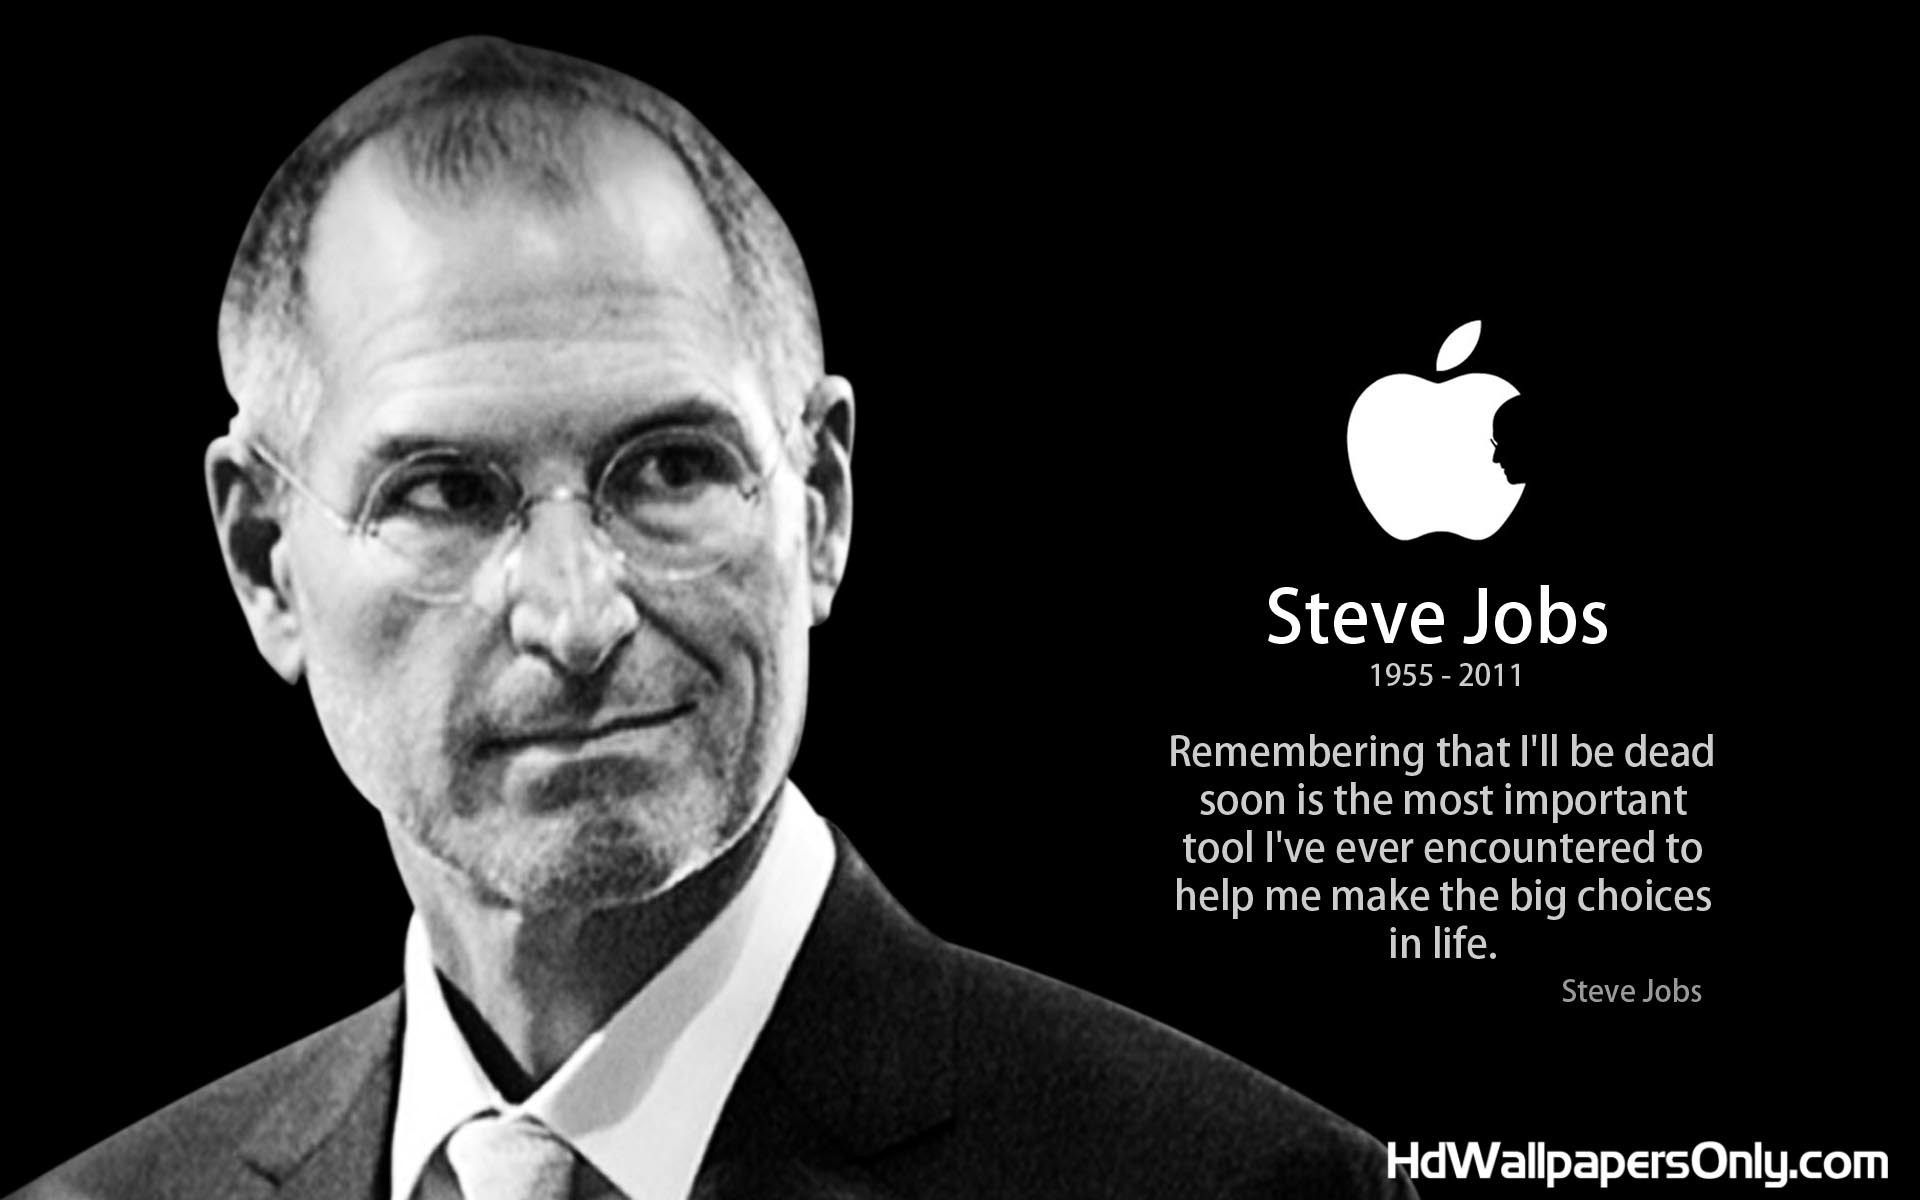 reaction paper of steve job s Steve jobs leadership at apple inc steve jobs leadership at apple corporation introduction and traits steve jobs returned to apple after twelve years a revitalized leader having left the corporation in 1985 after an internal dispute.